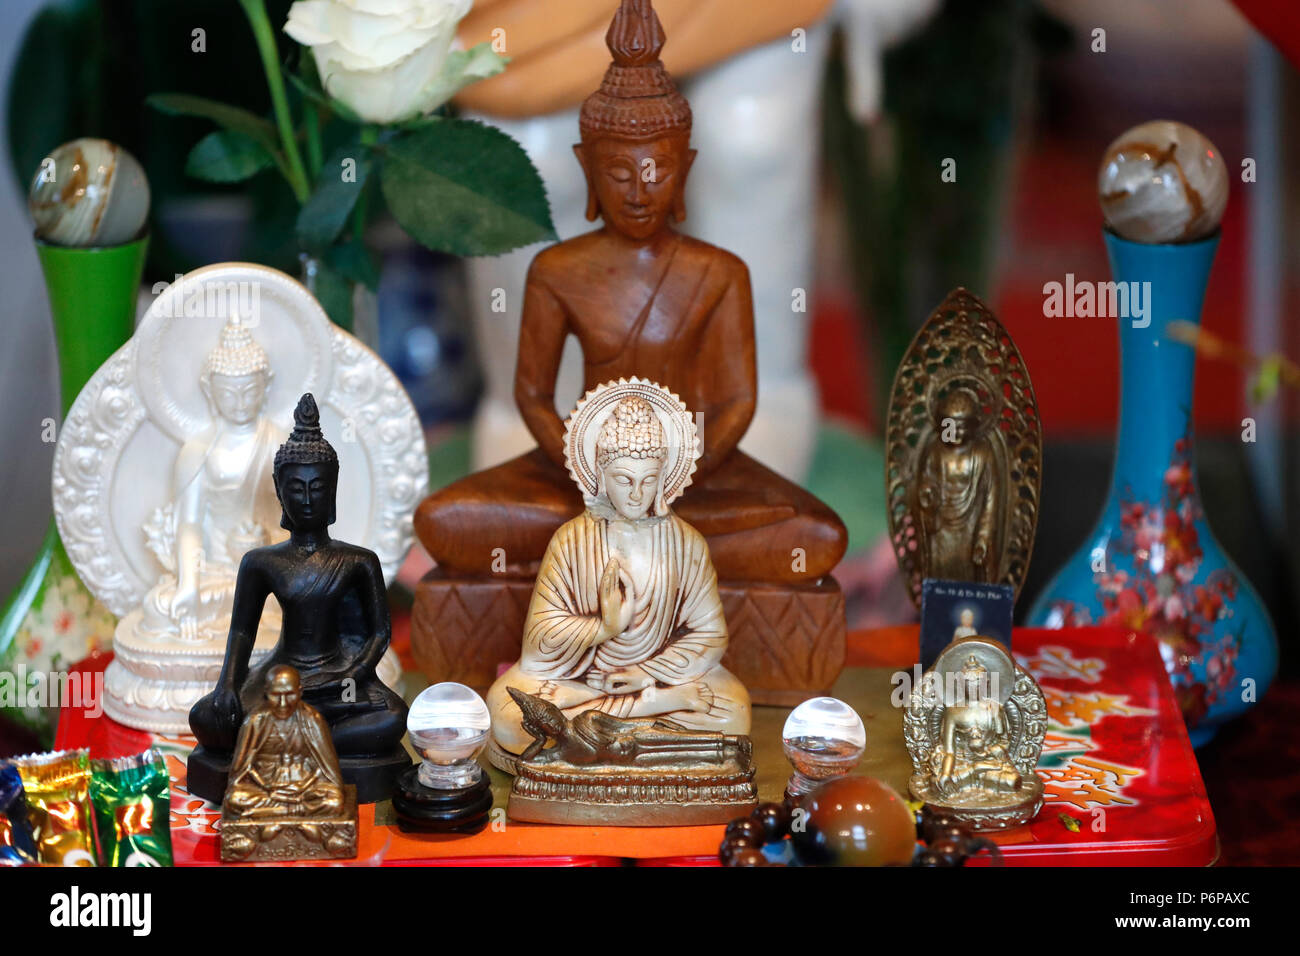 Chua Tu An Buddhist temple. Buddha statues on altar.  Saint-Pierre en Faucigny. France. - Stock Image